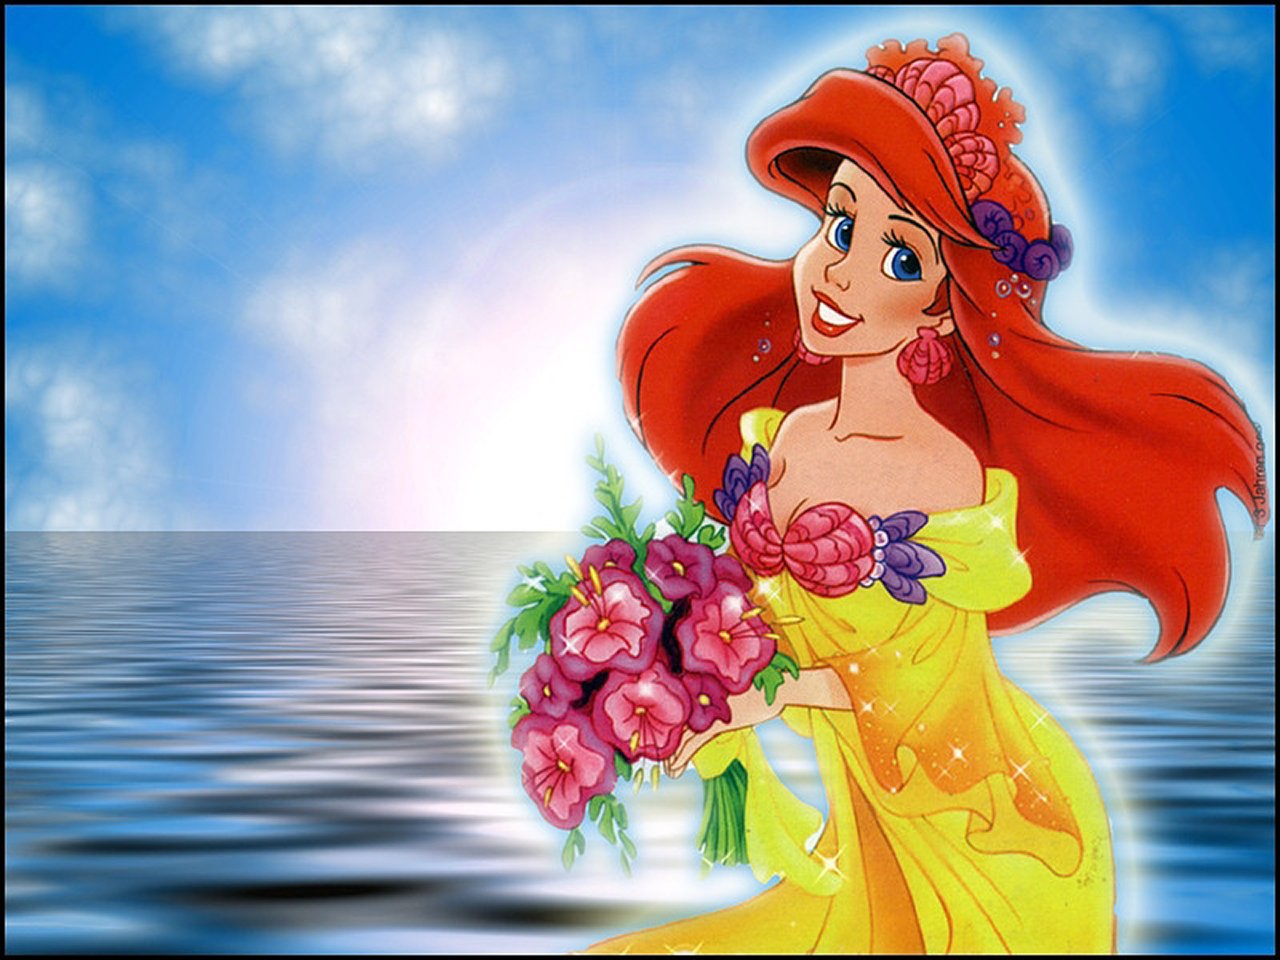 1280x960px the little mermaid wallpaper desktop - wallpapersafari